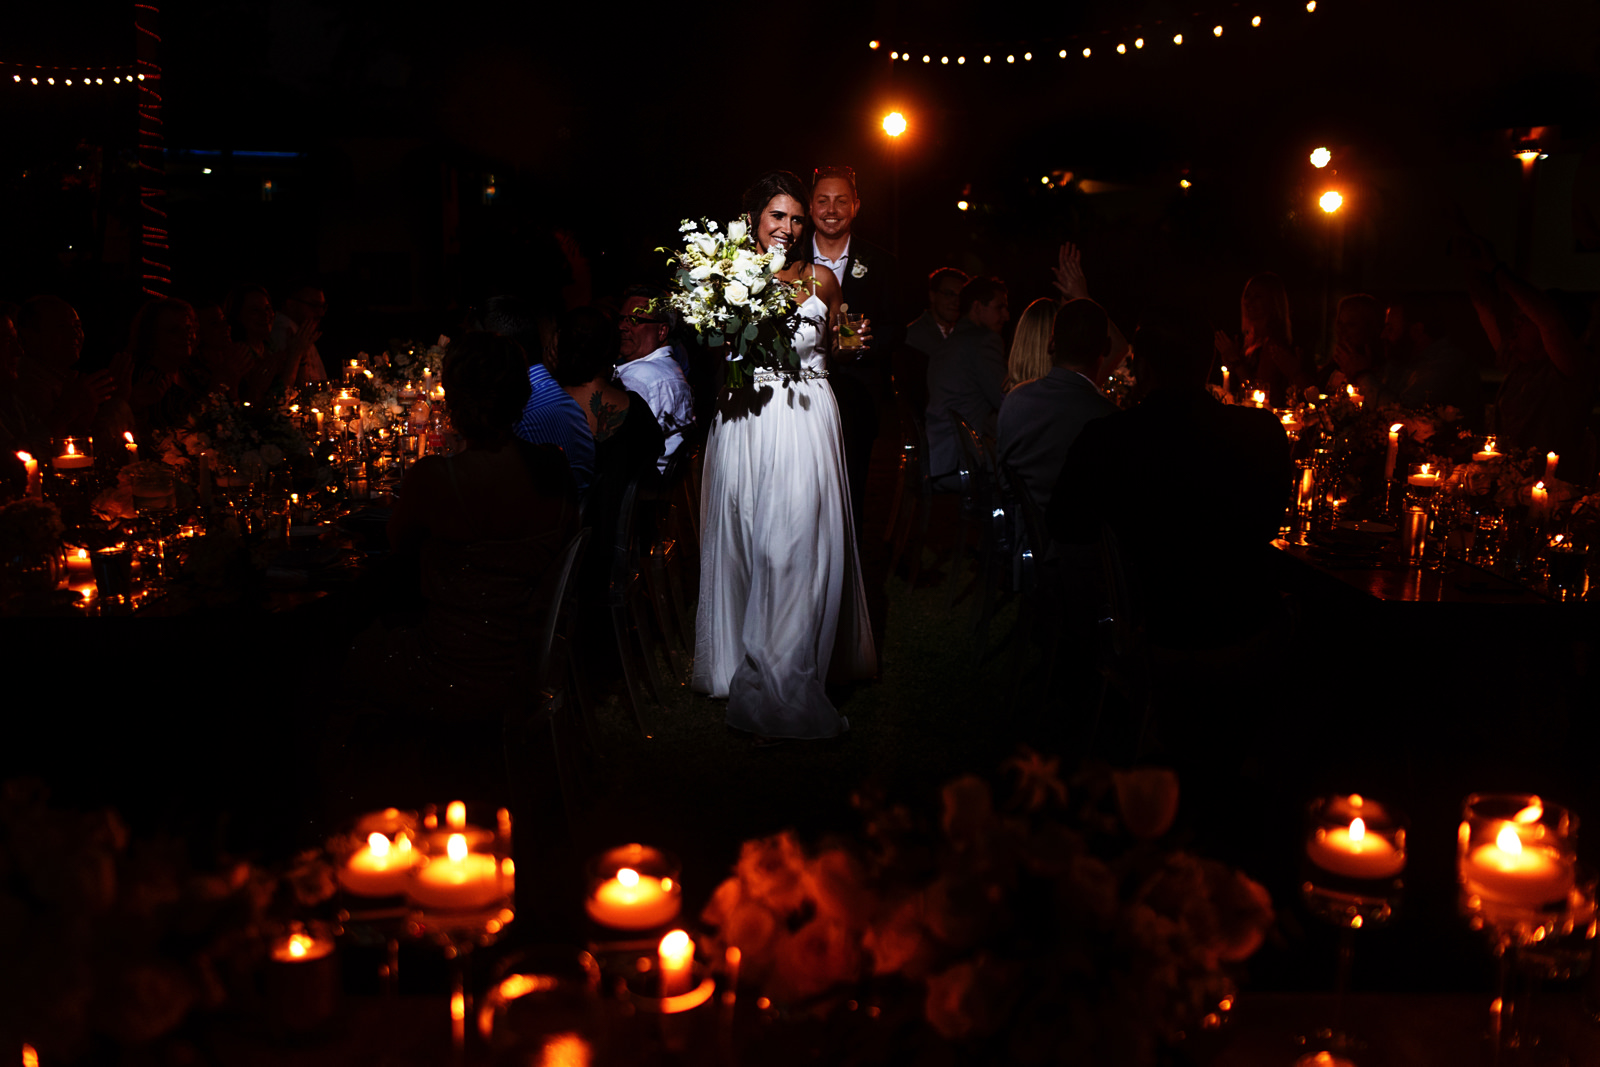 Bride and groom entrance into the reception between the dinning tables filled with candles